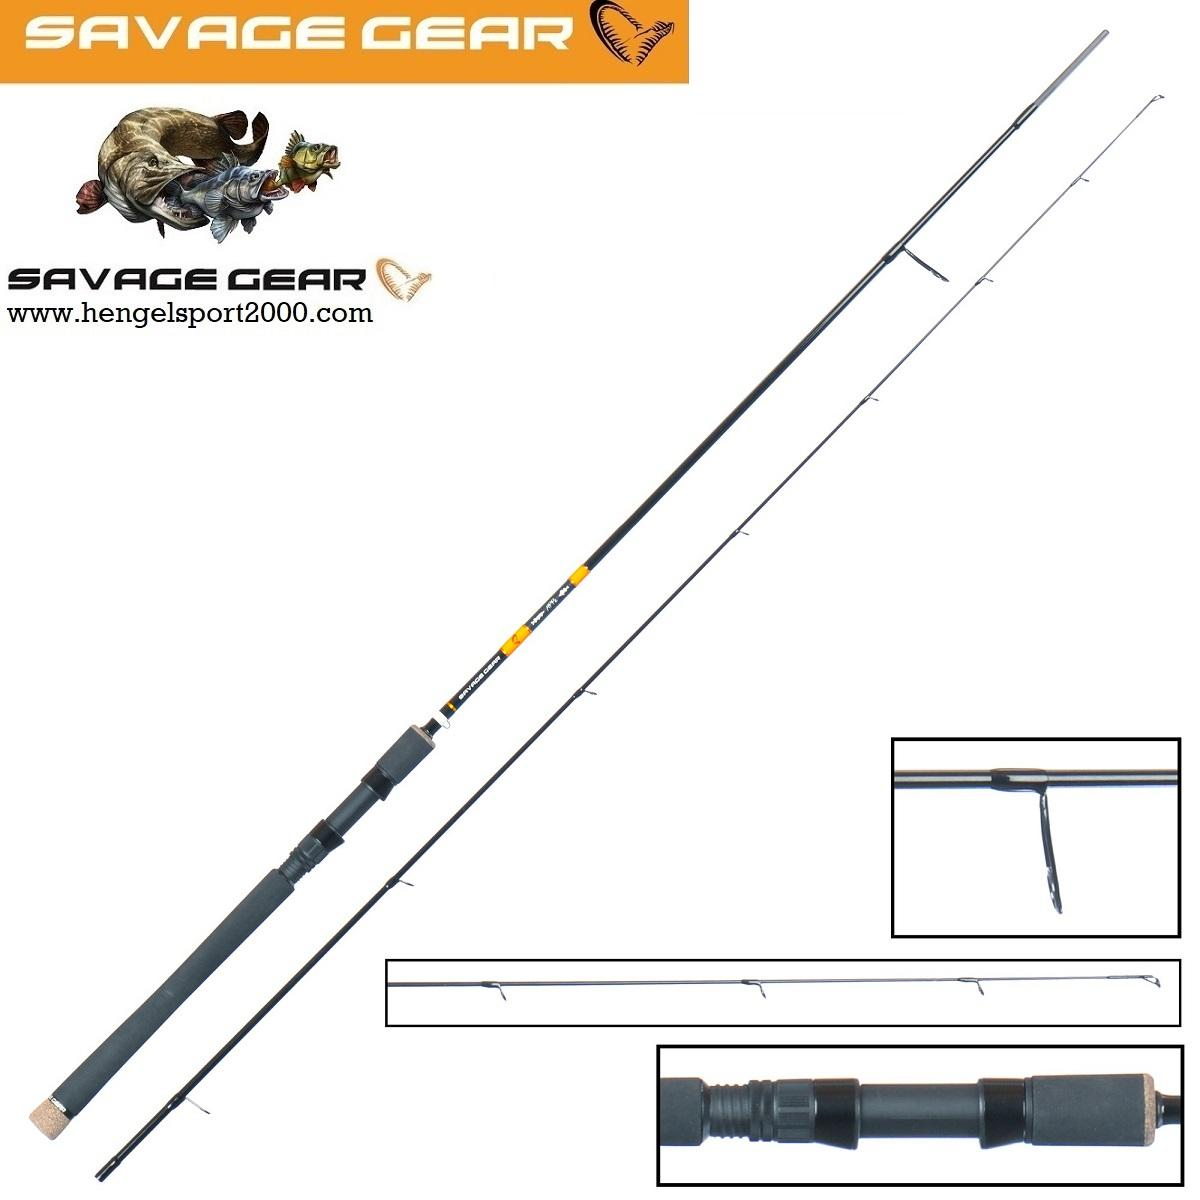 Savage Gear Multi Purpose Predator2 Spin 198 cm 12 - 35 gram